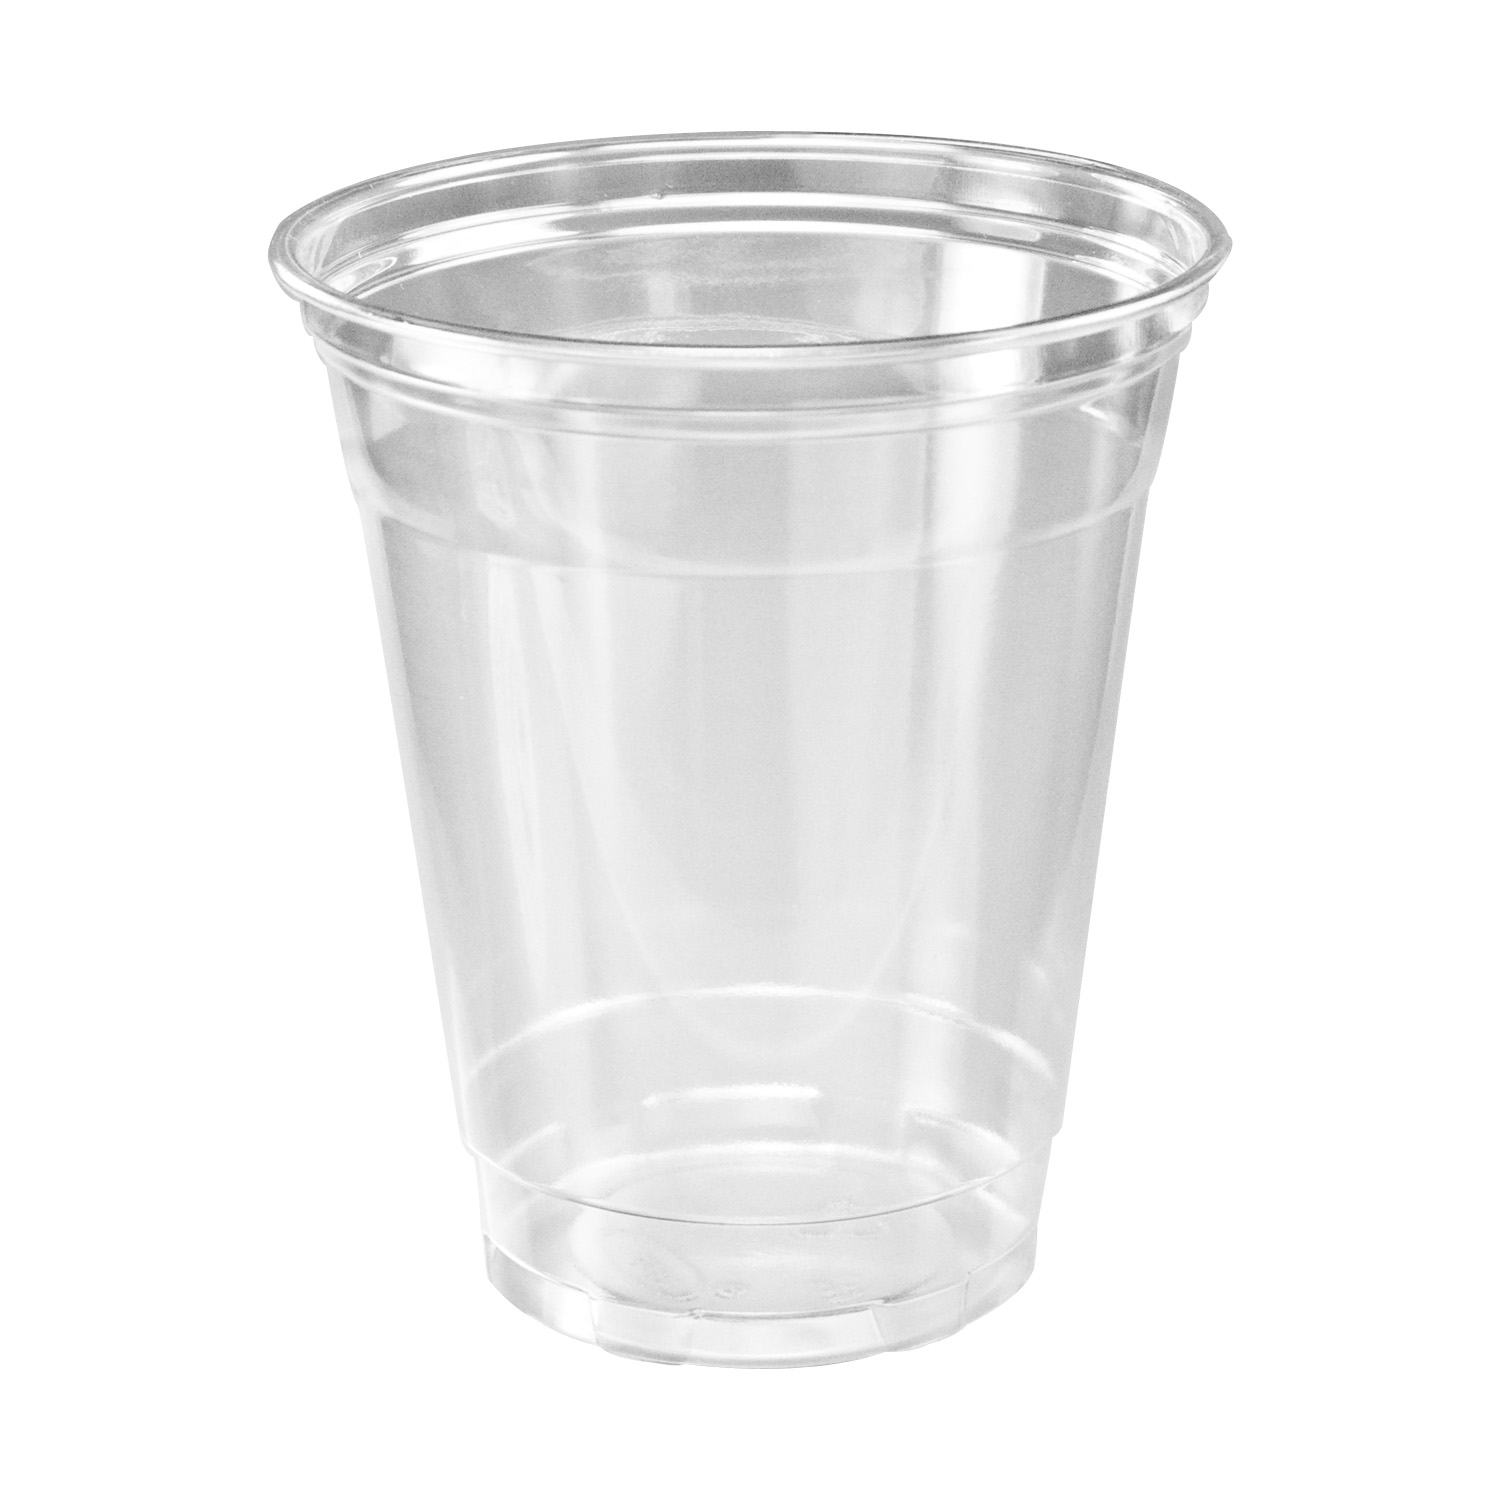 Disposable Plastic Cups x 100pcs